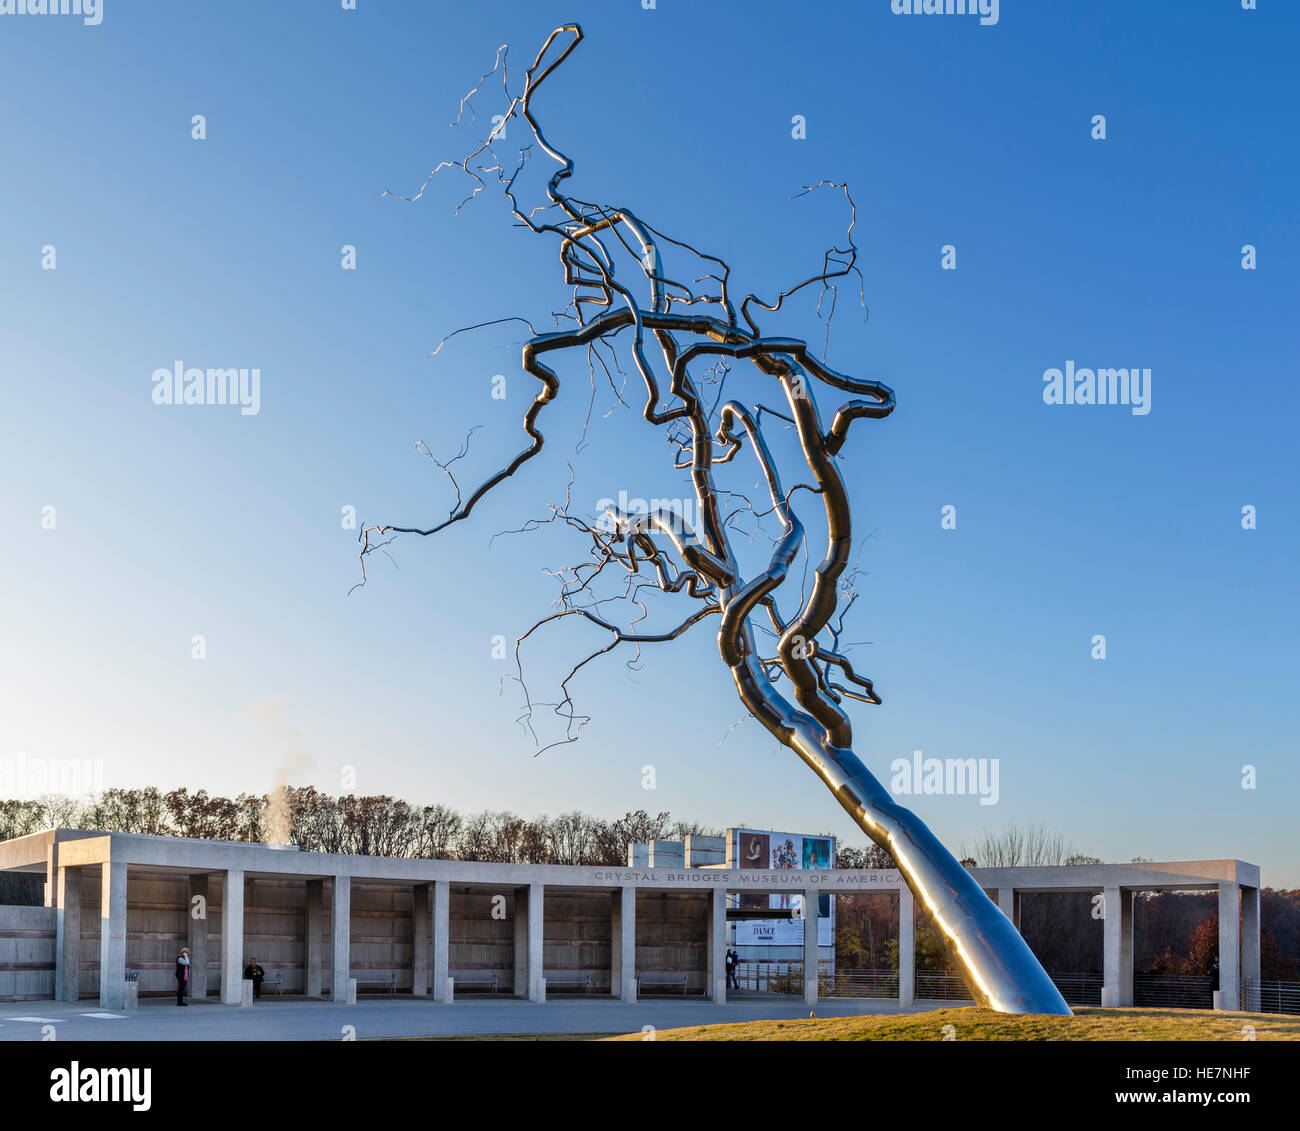 Roxy Paine's 'Yield' sculpture in front of The Crystal Bridges Museum of American Art, Bentonville, - Stock Image